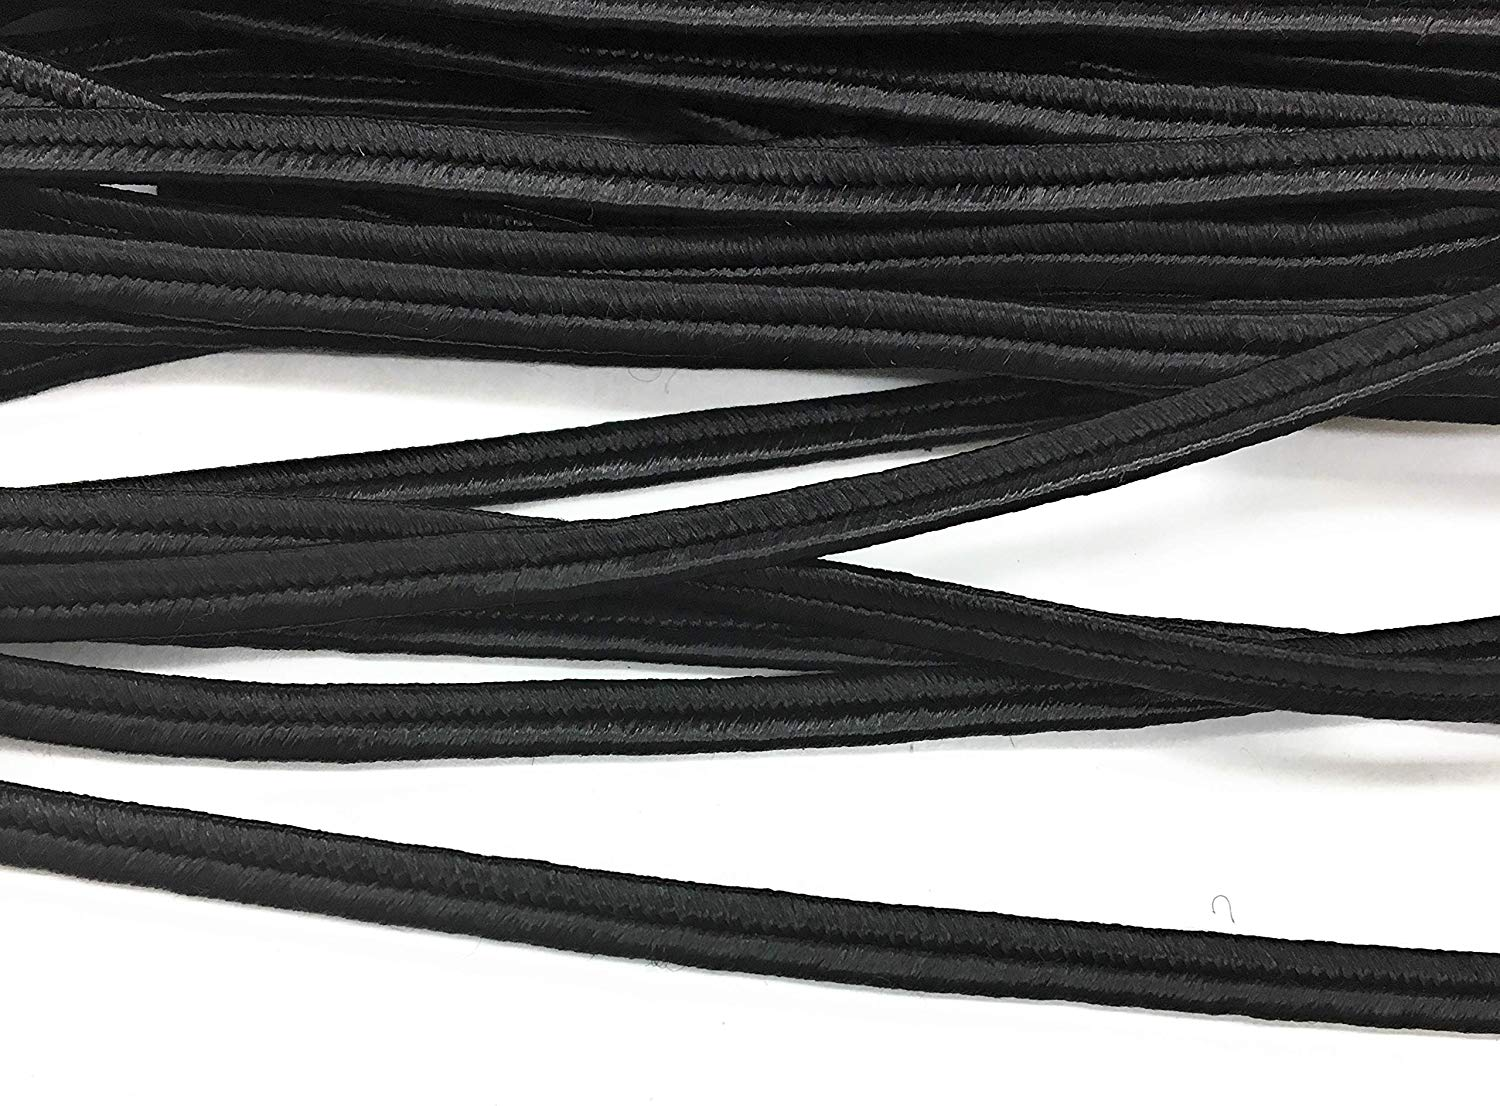 "Black Soutache - Black Braided Cord Beading,1/8"" (4mm) Sewing,Quilting Trimming - 10 Yards"